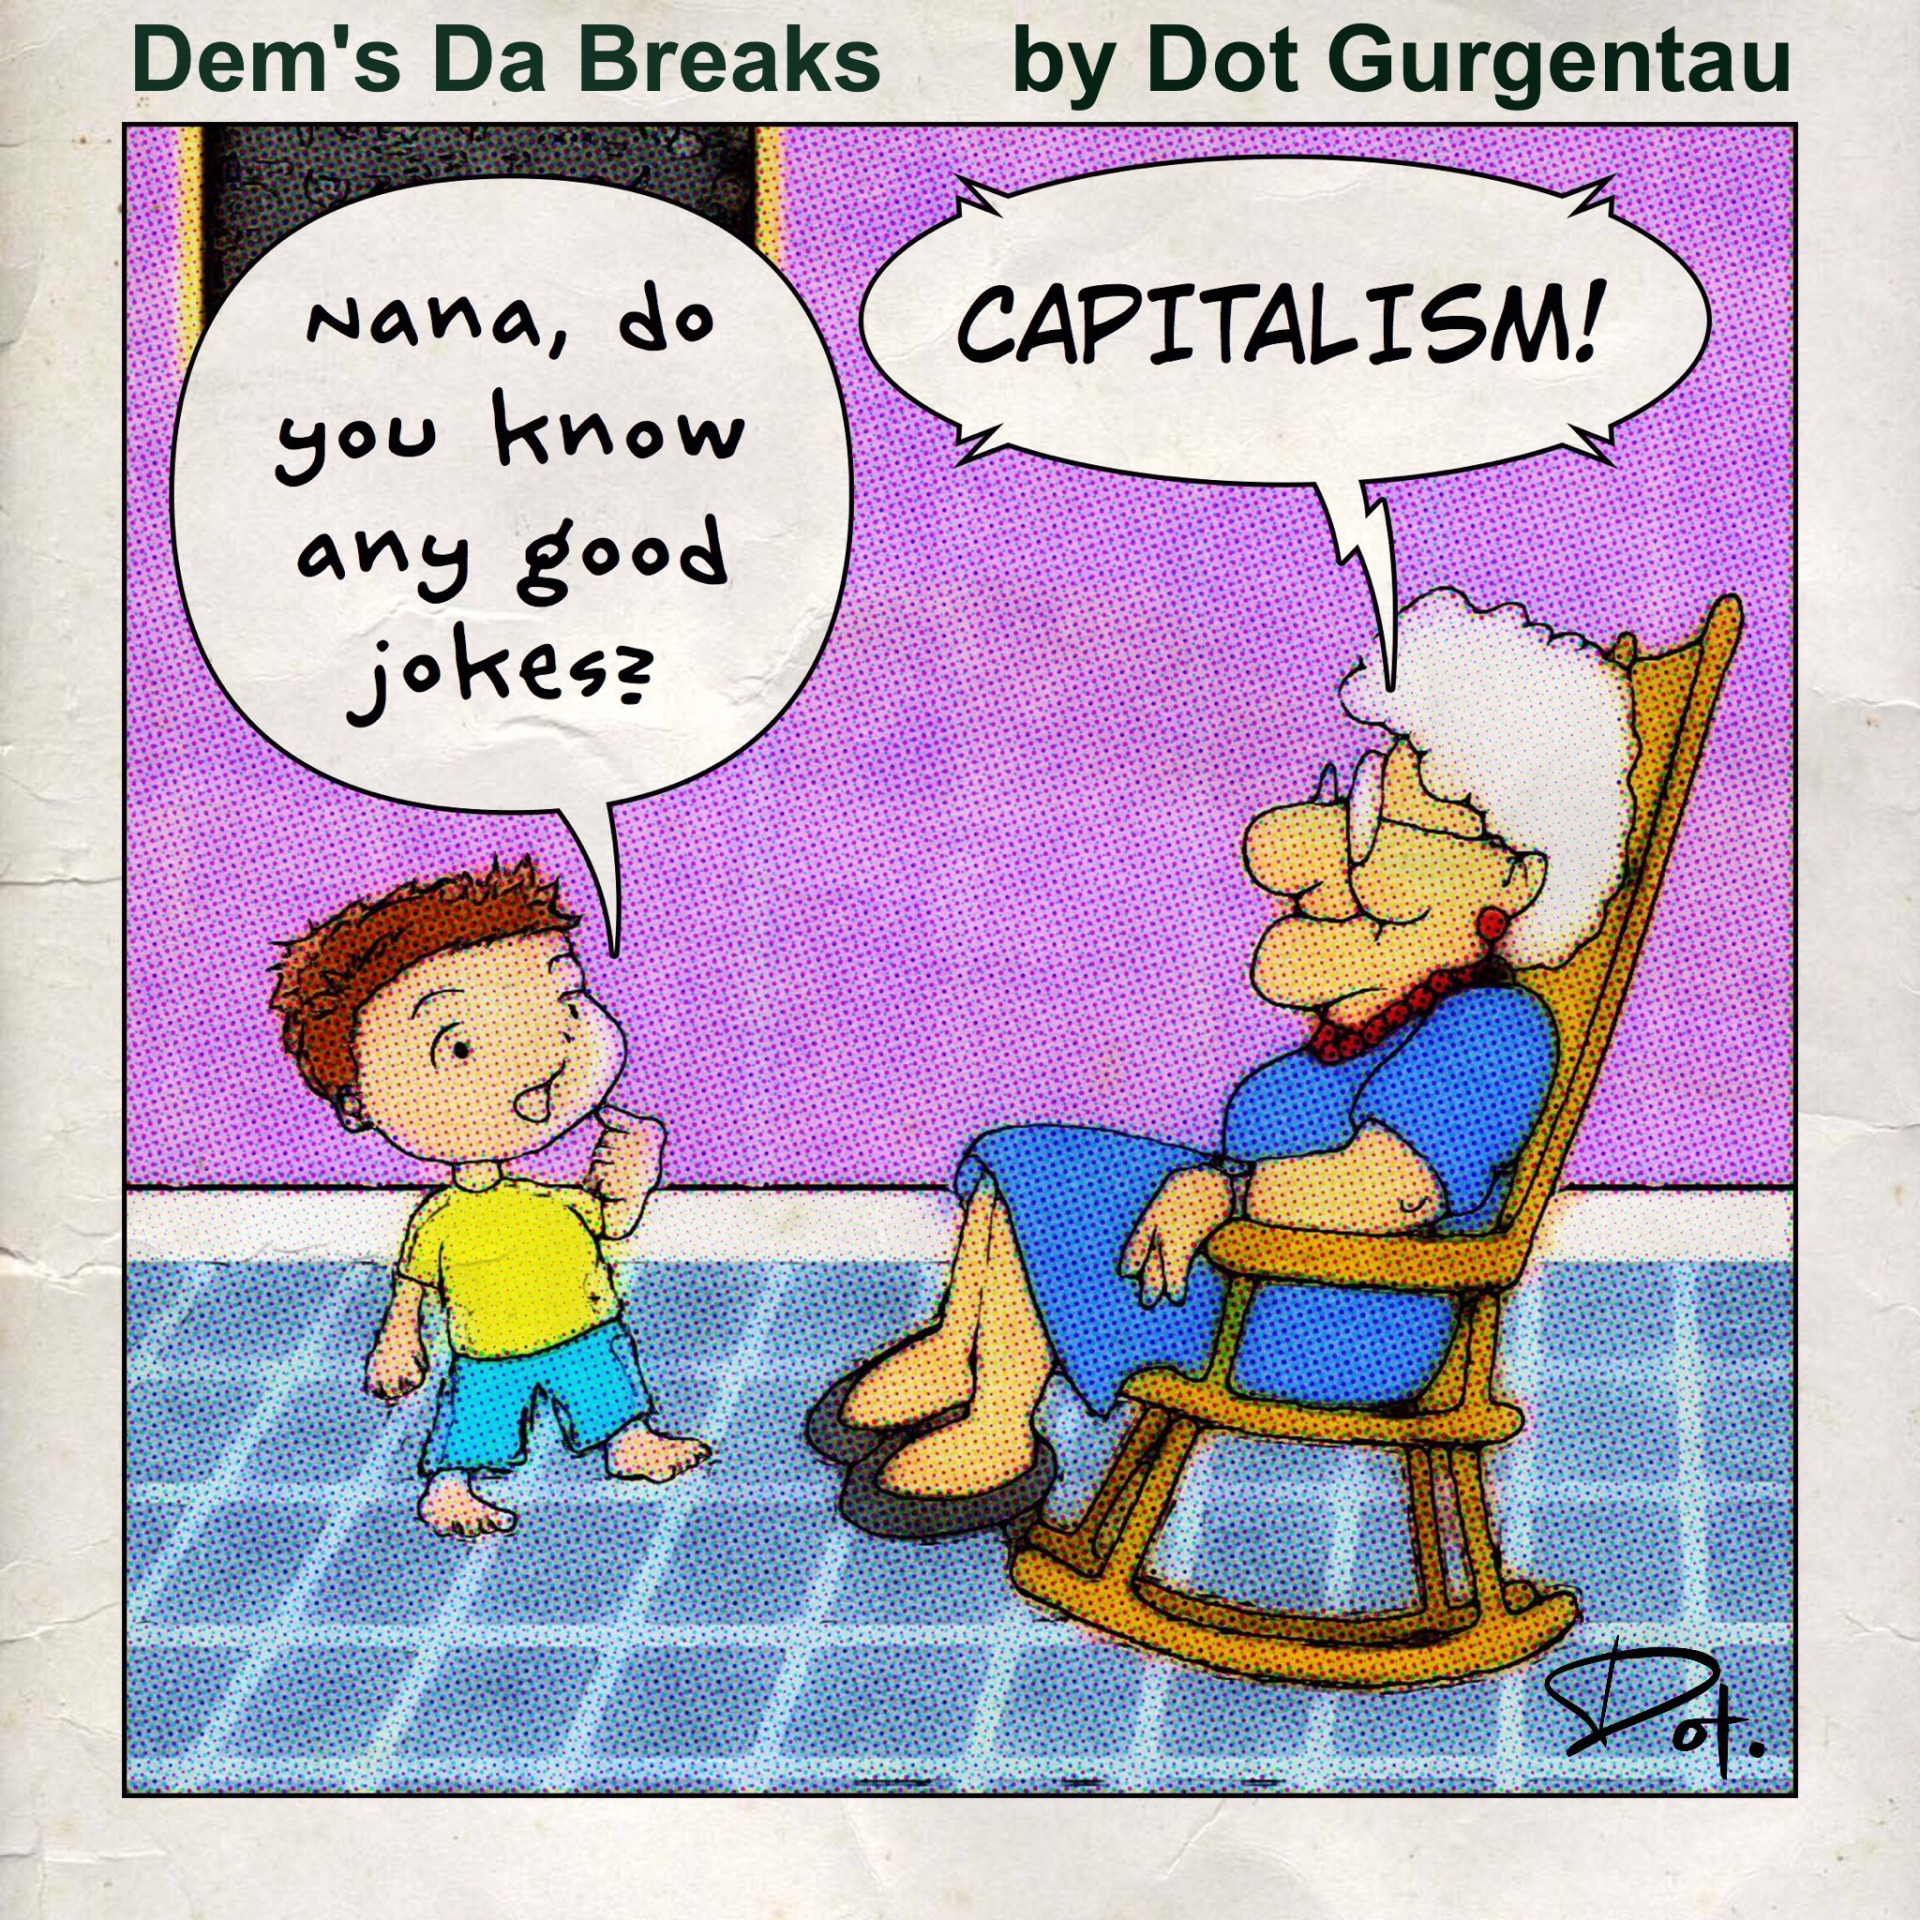 dot cartoon capitalism joke it is